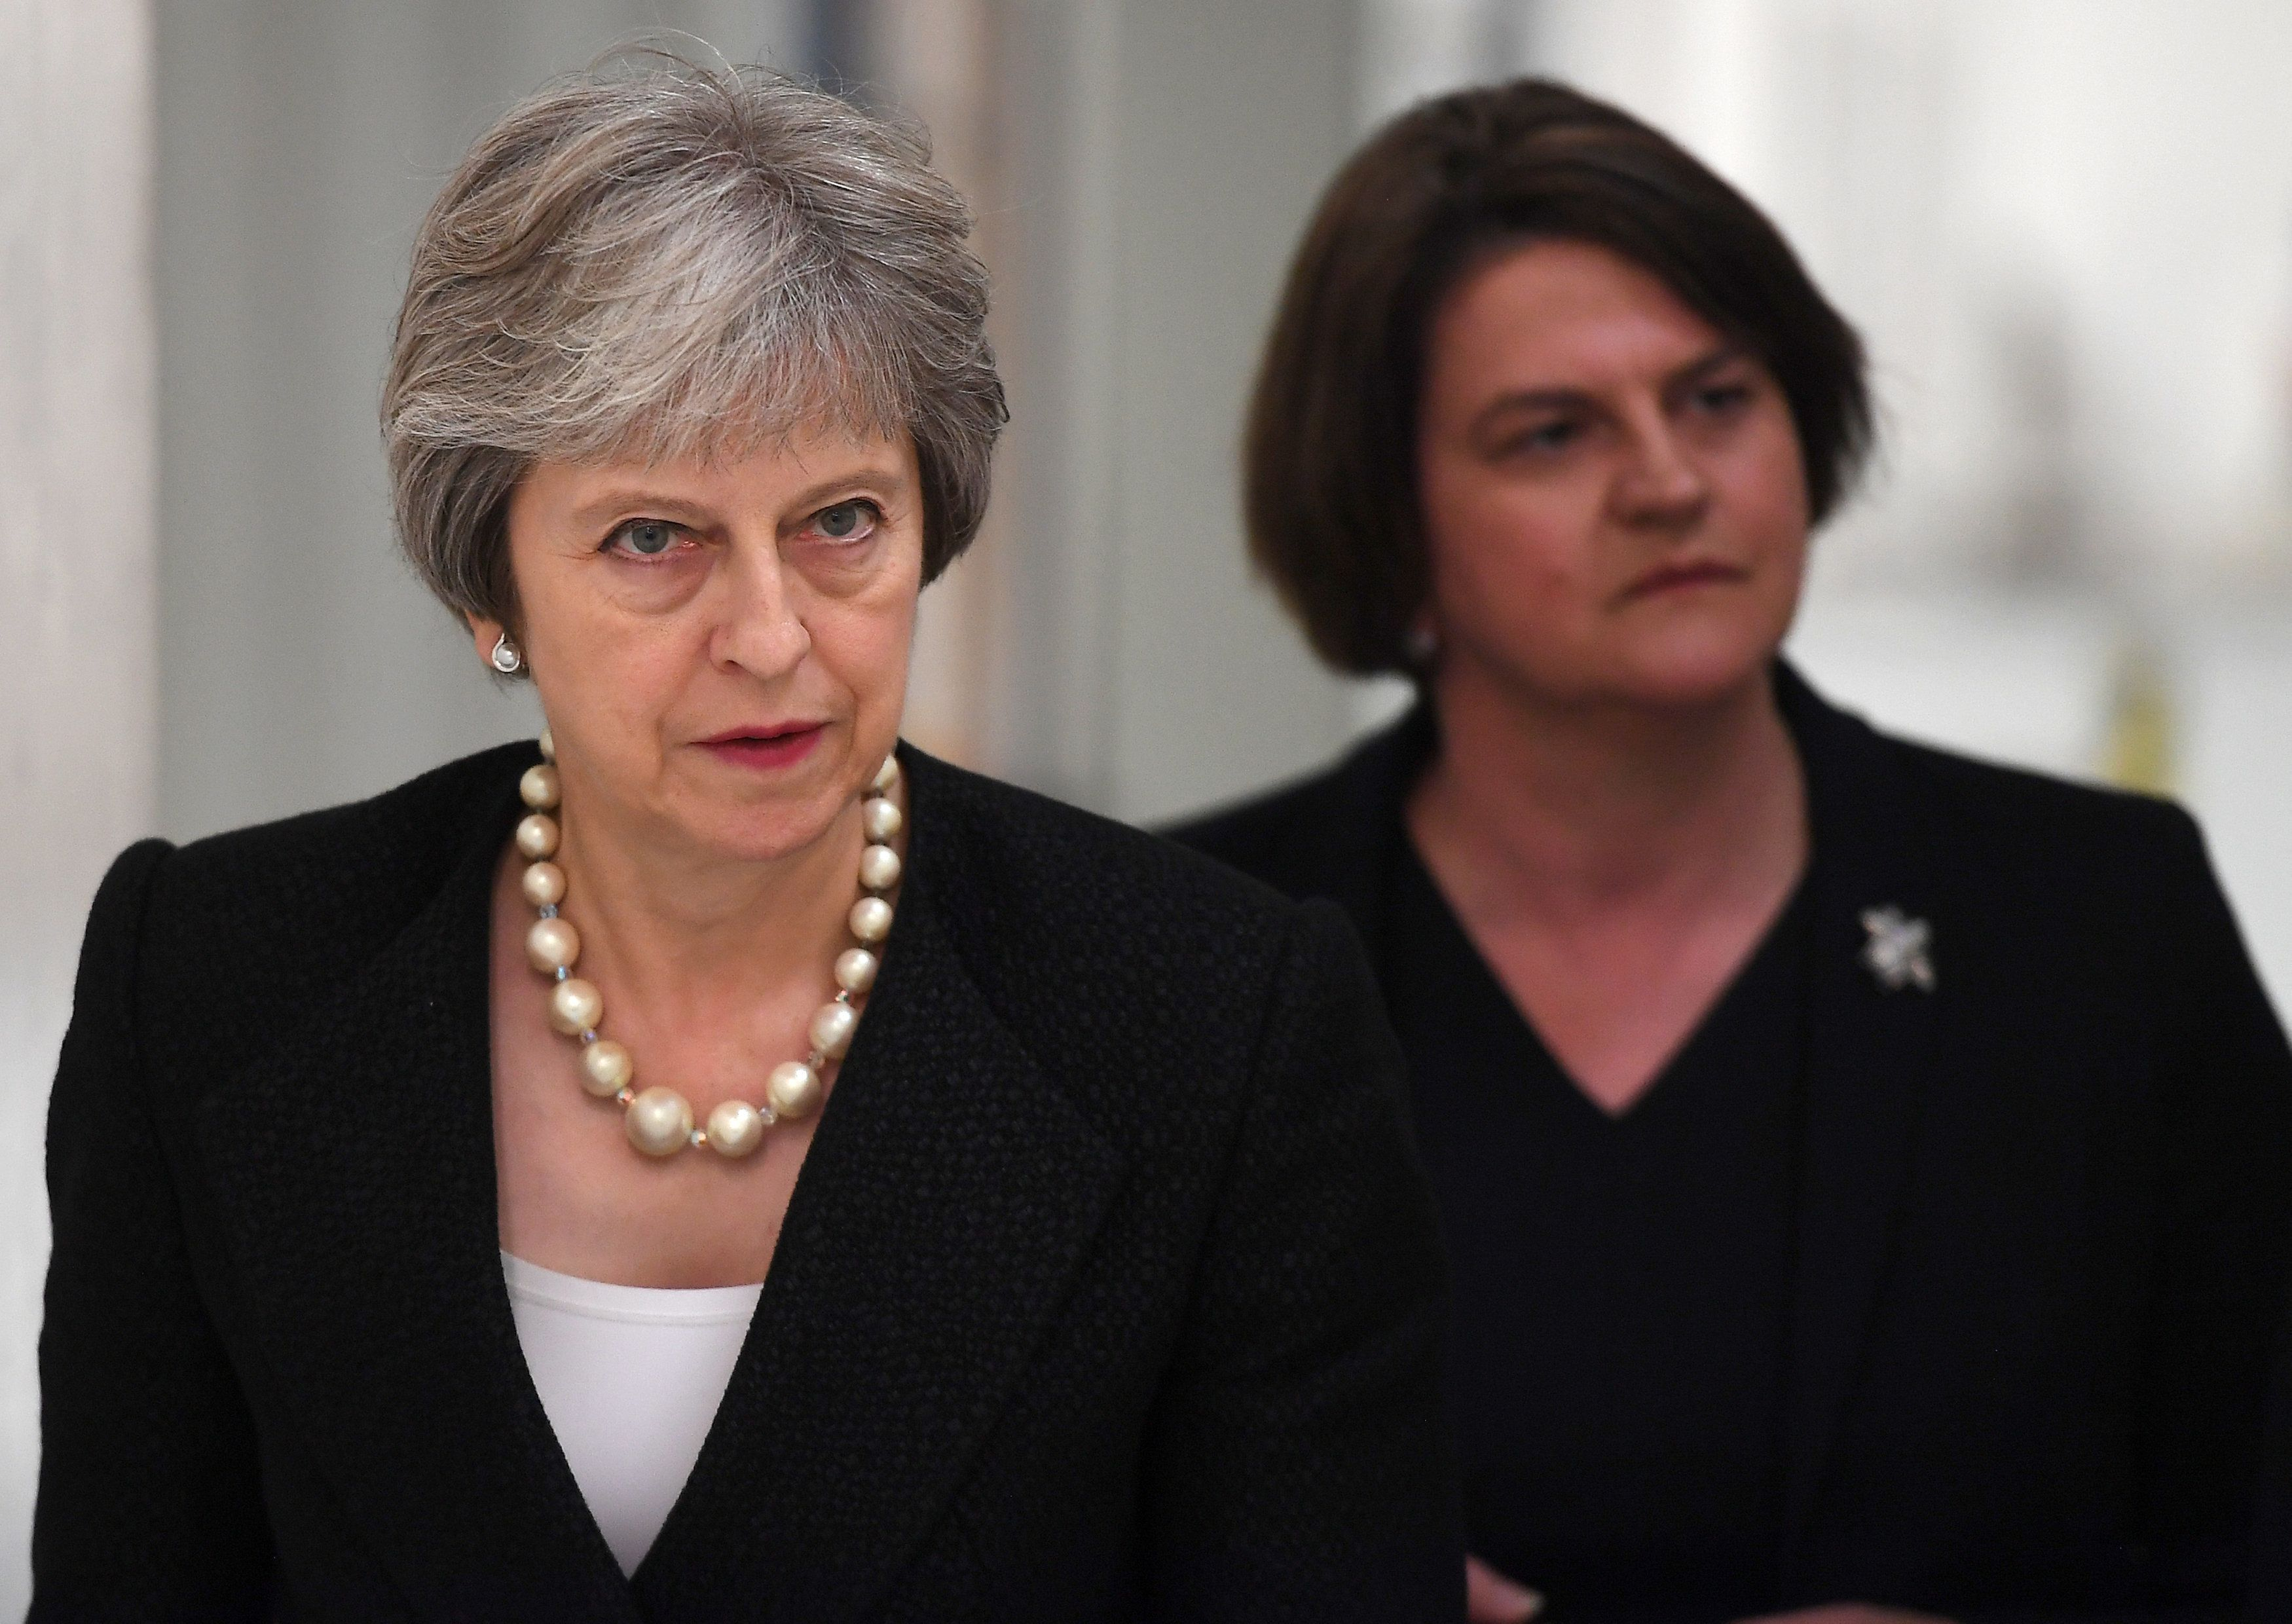 DUP Will Only Back Theresa May If Her Brexit Deal Fails - Boosting Tory